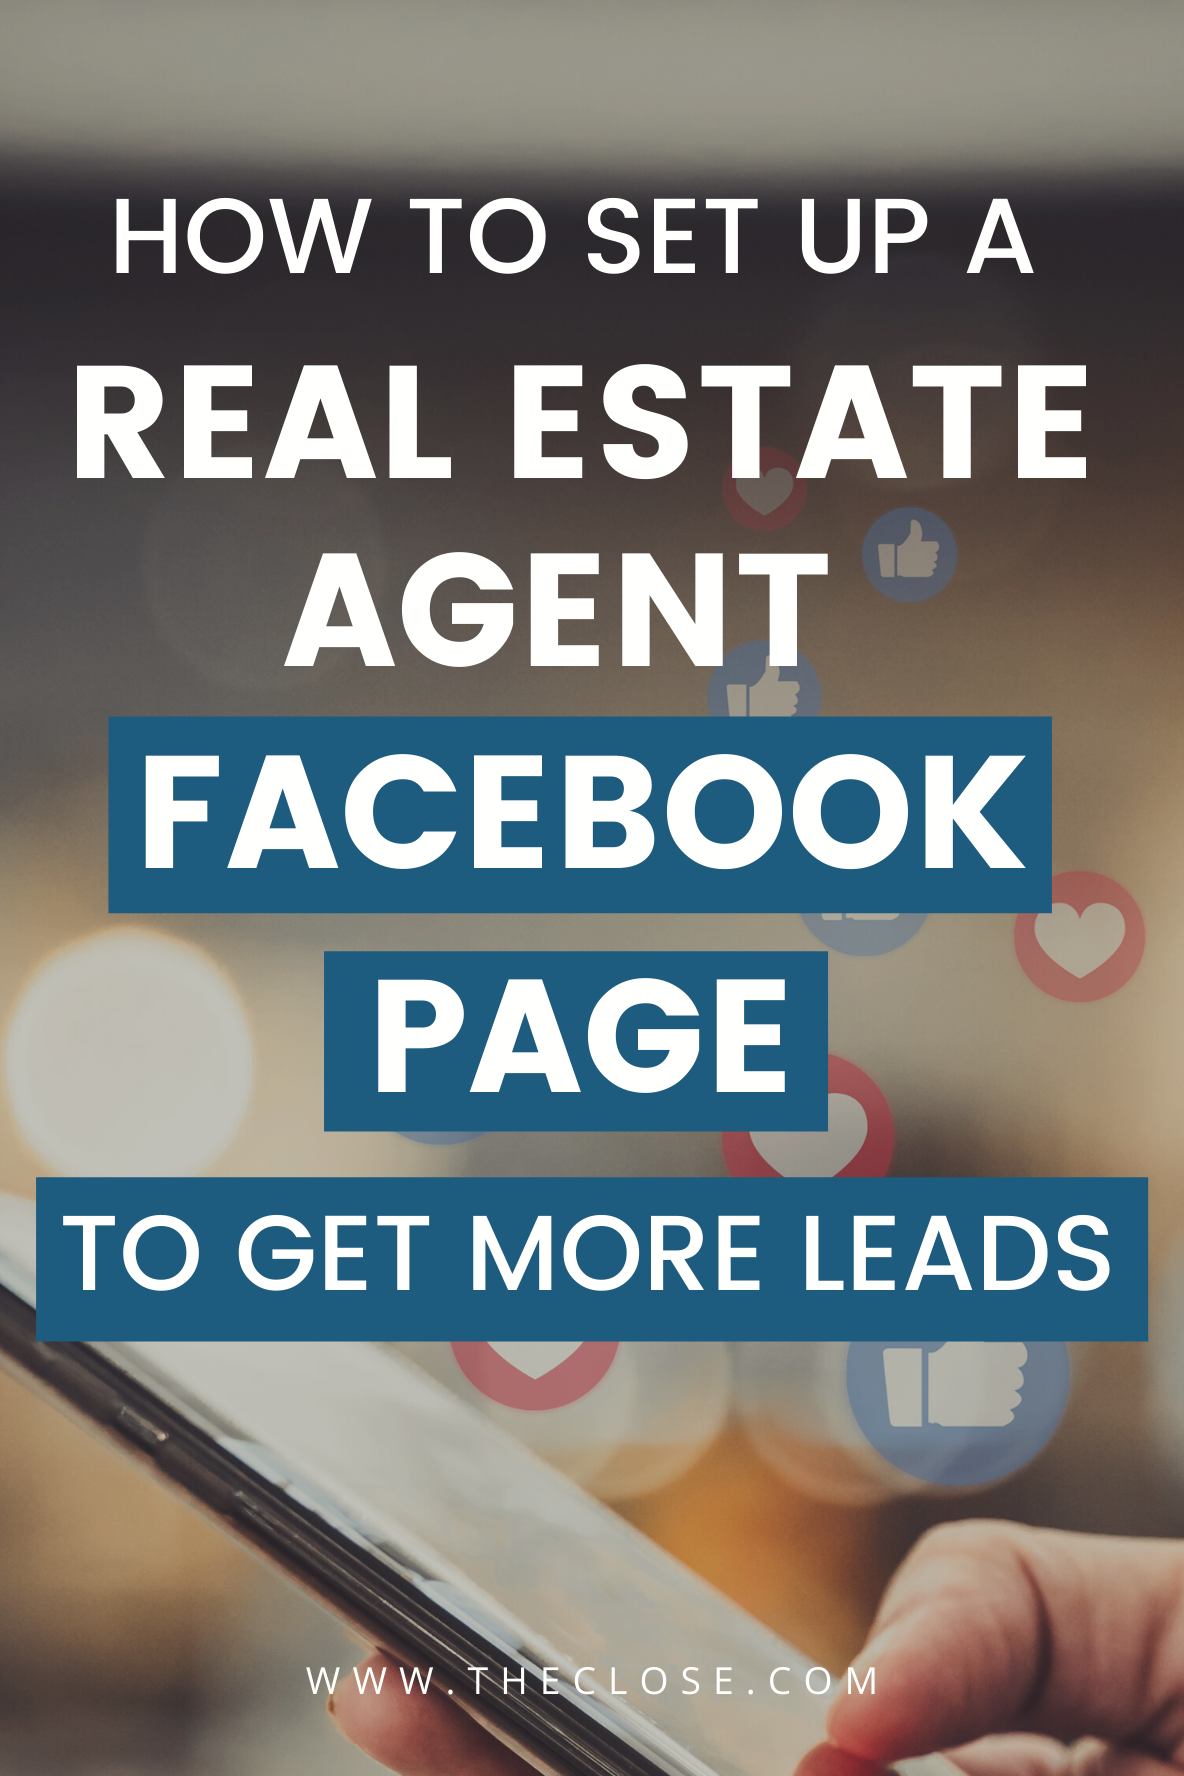 How to Set Up a Real Estate Agent Facebook Page